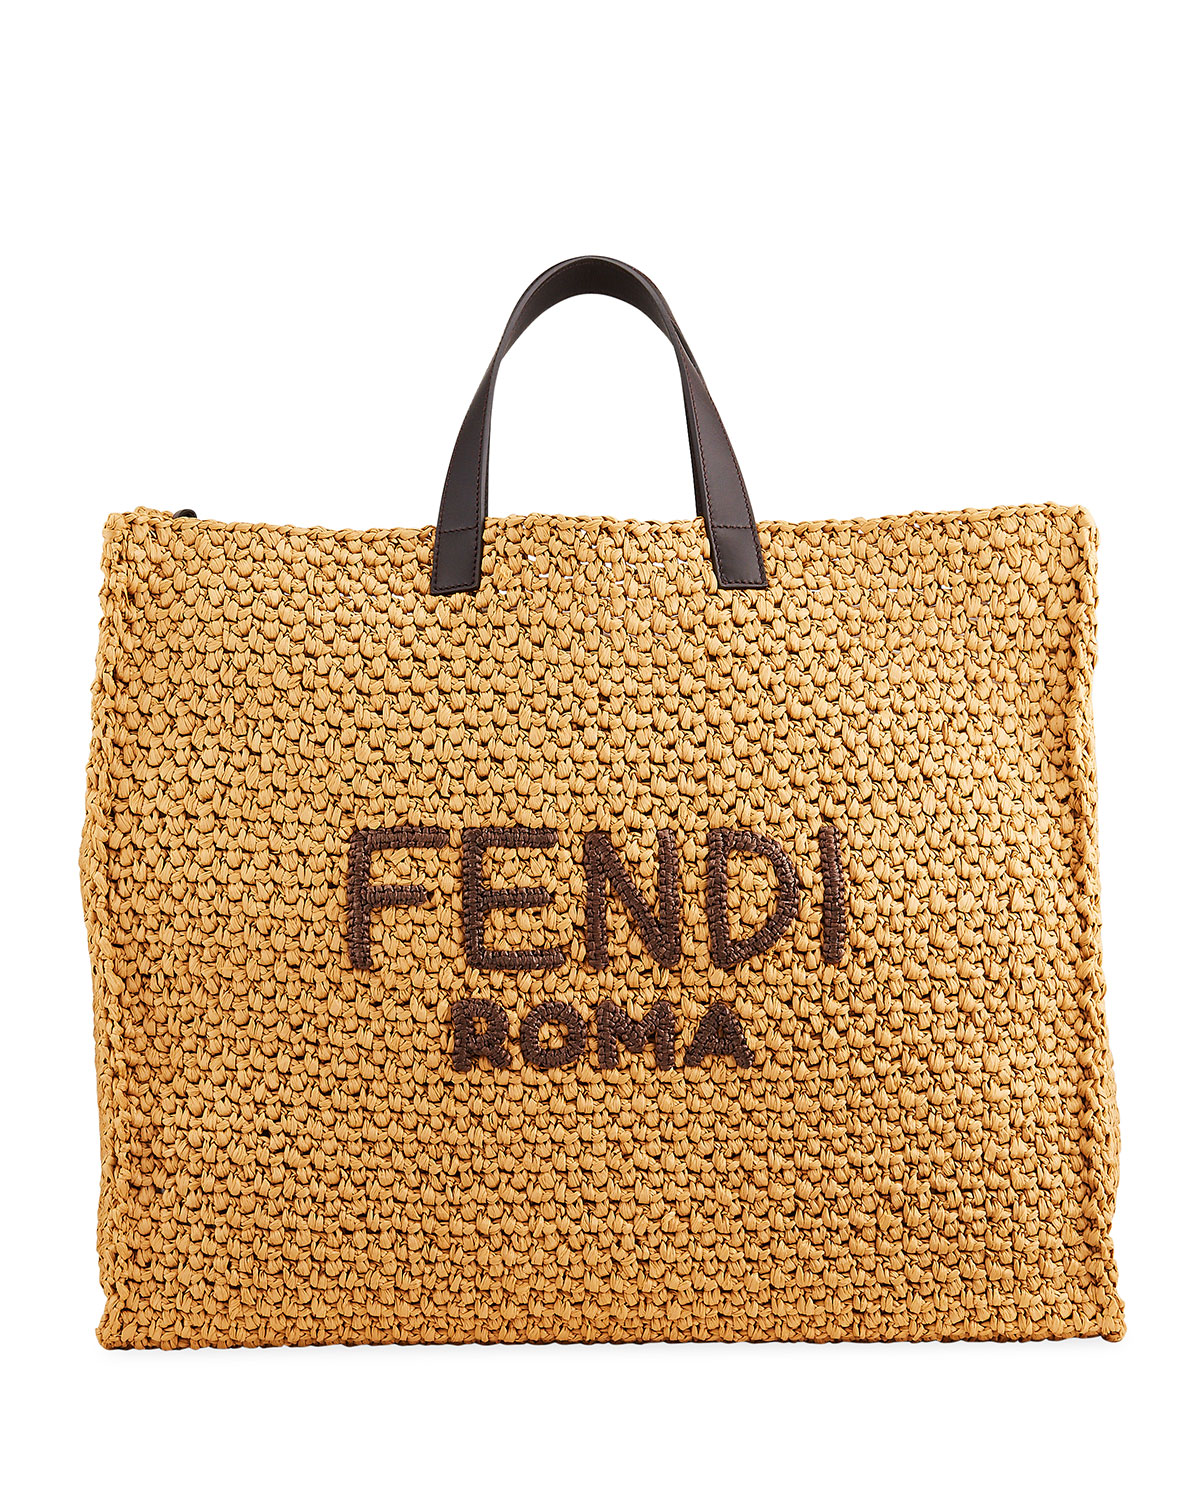 Fendi MEN'S ROMA RAFFIA TOTE BAG